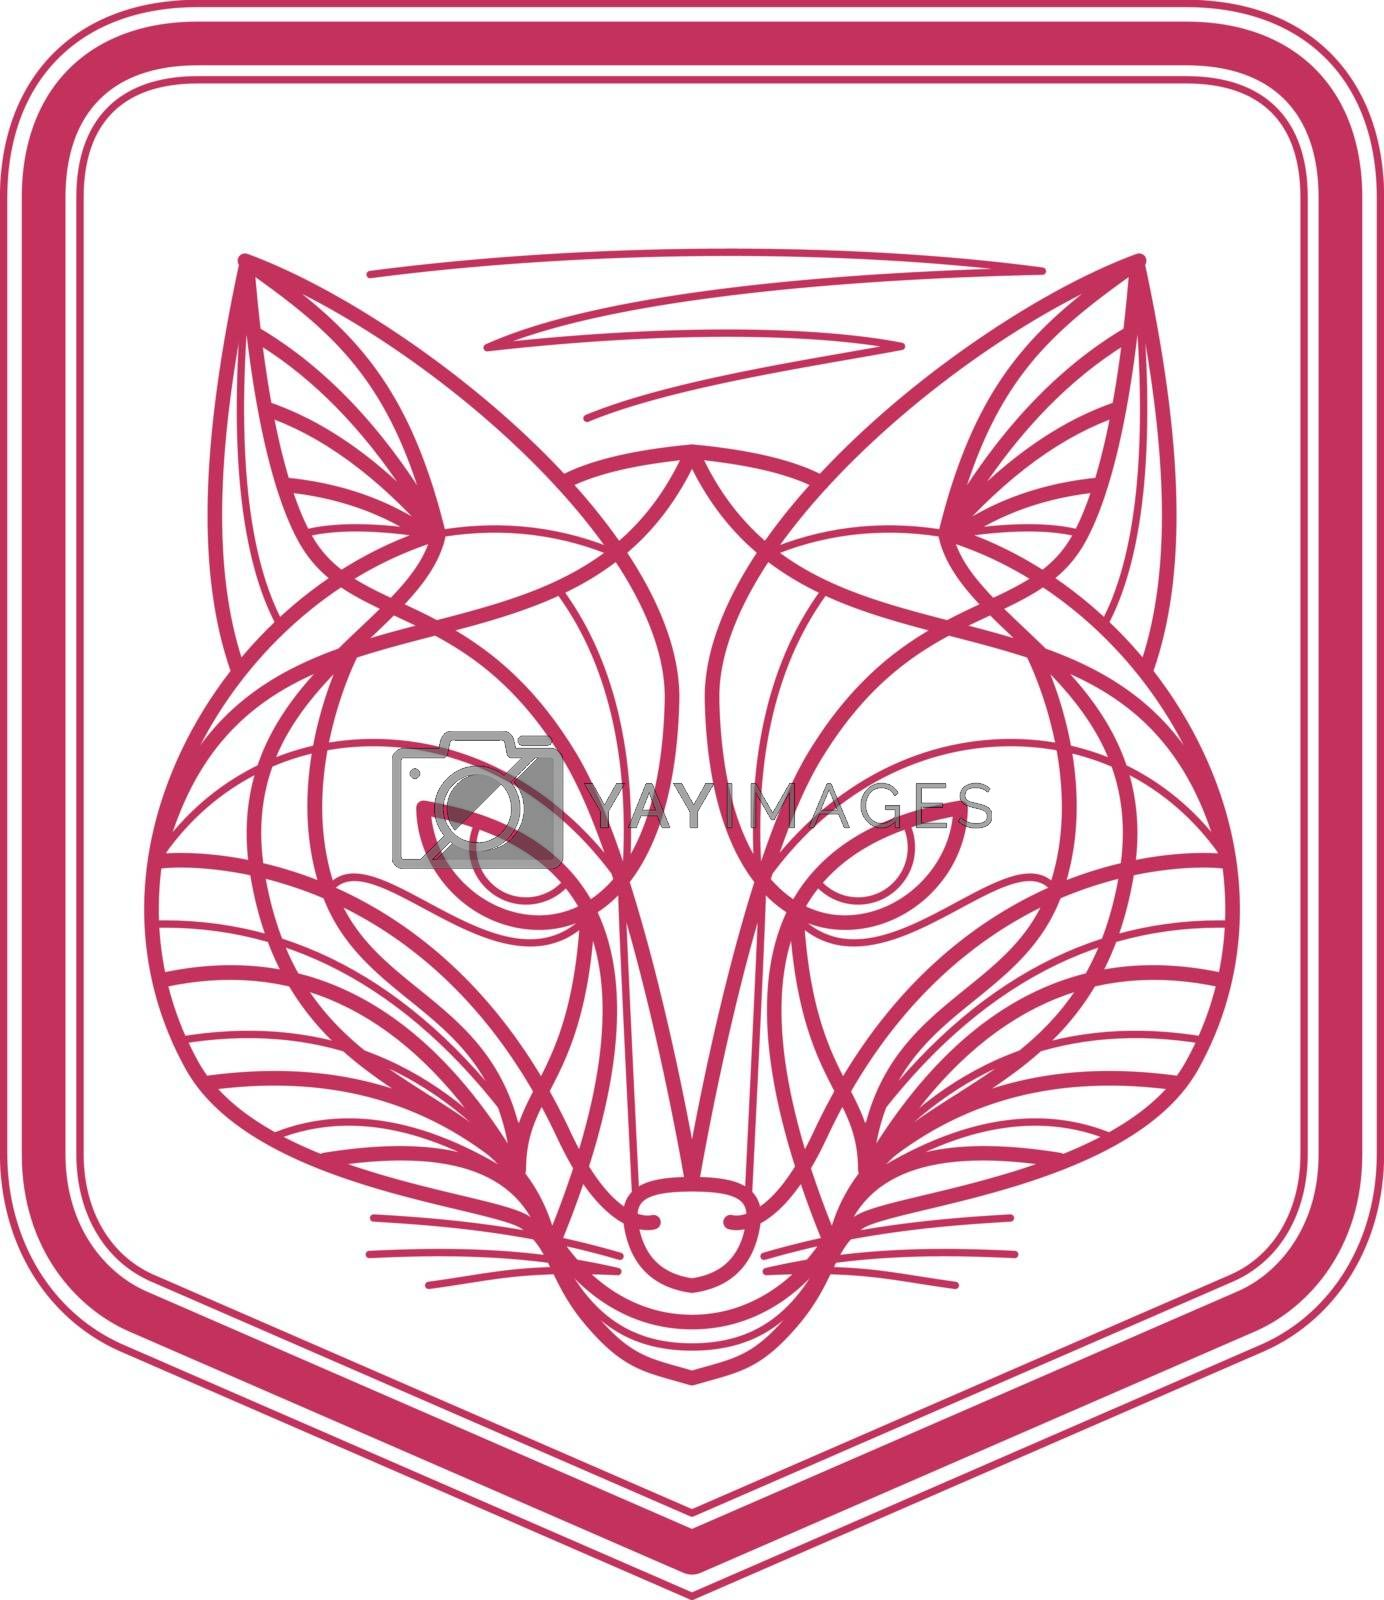 Mono line illustration of a Fox Head viewed from front set inside shield Crest on isolated background.